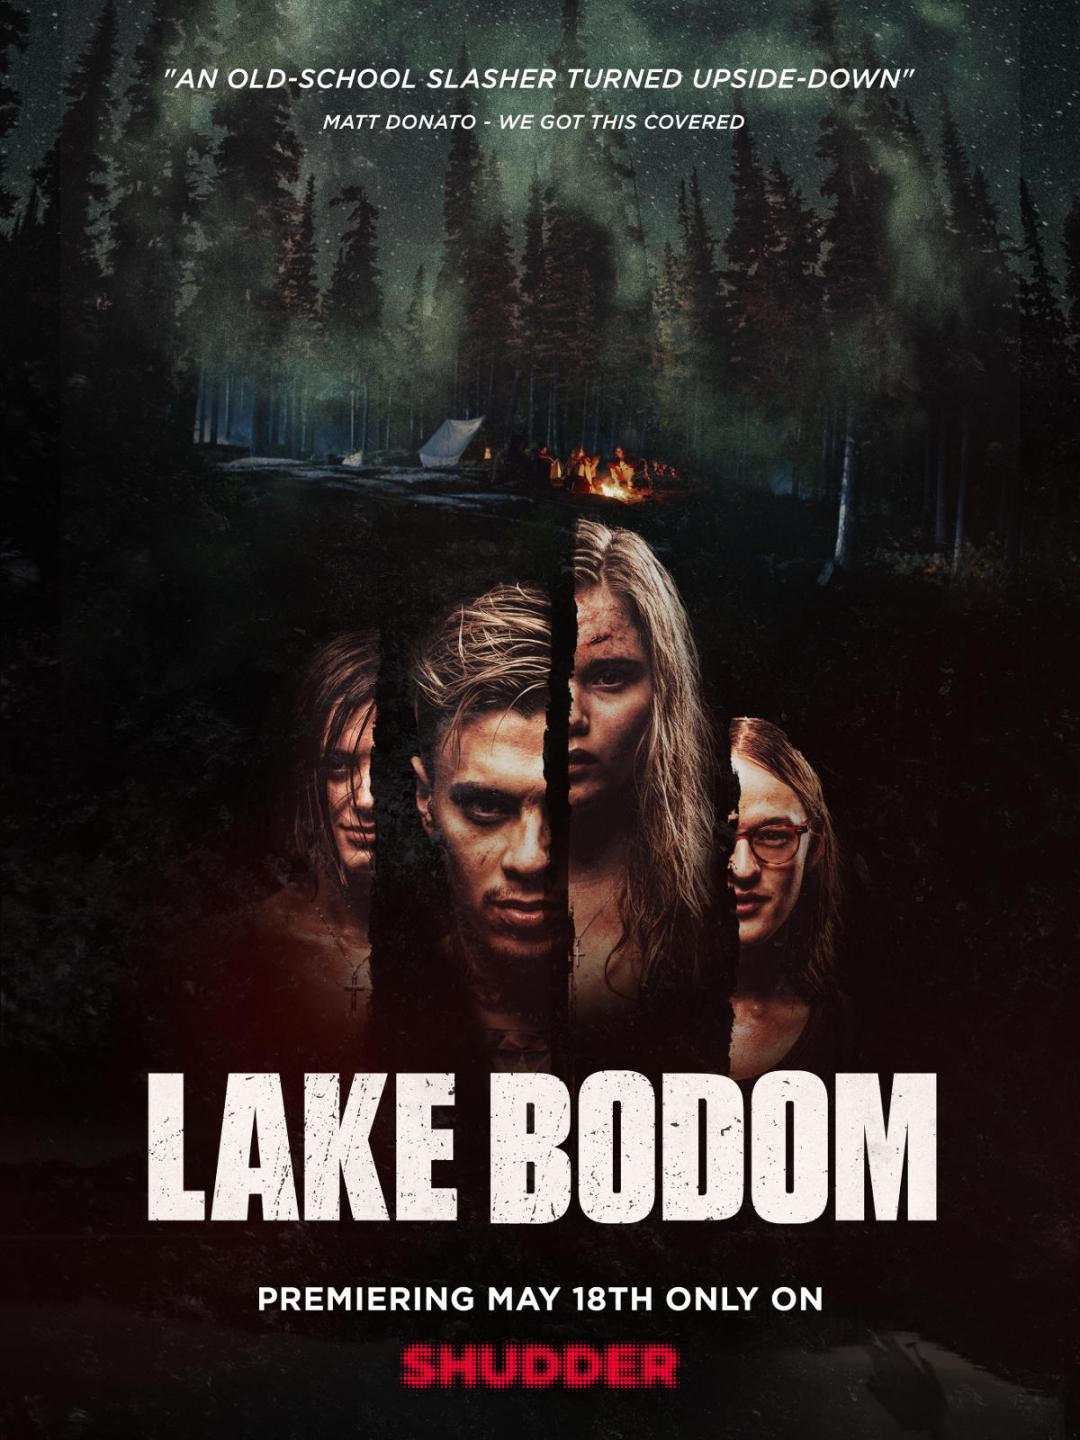 'Lake Bodom' Comes To Shudder In This Trailer!